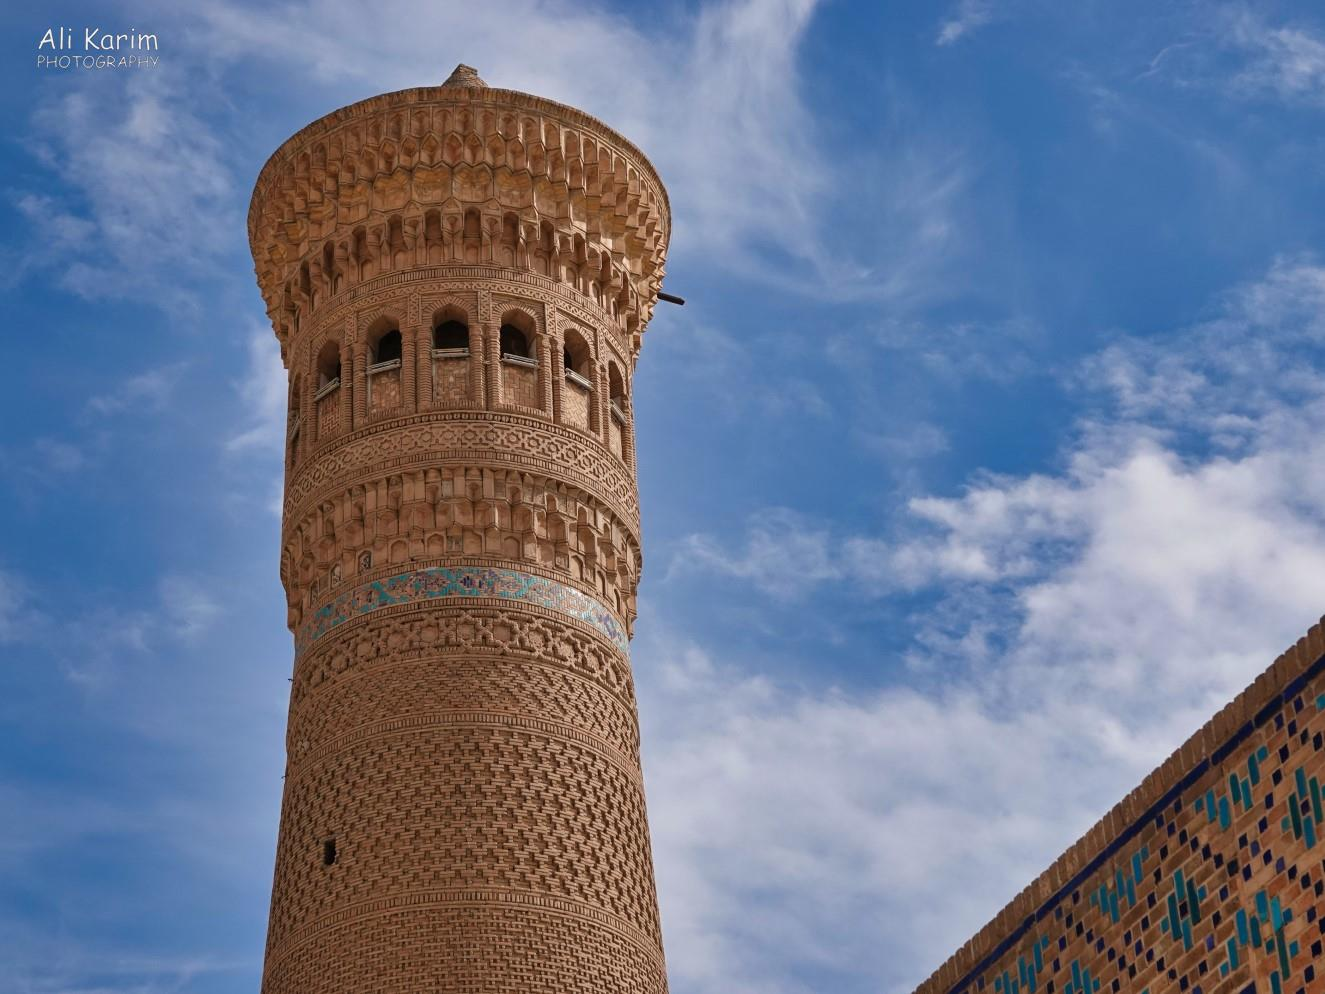 Bukhara, Oct 2019, Close-up of the minaret, showing the delicate and intricate work on its façade